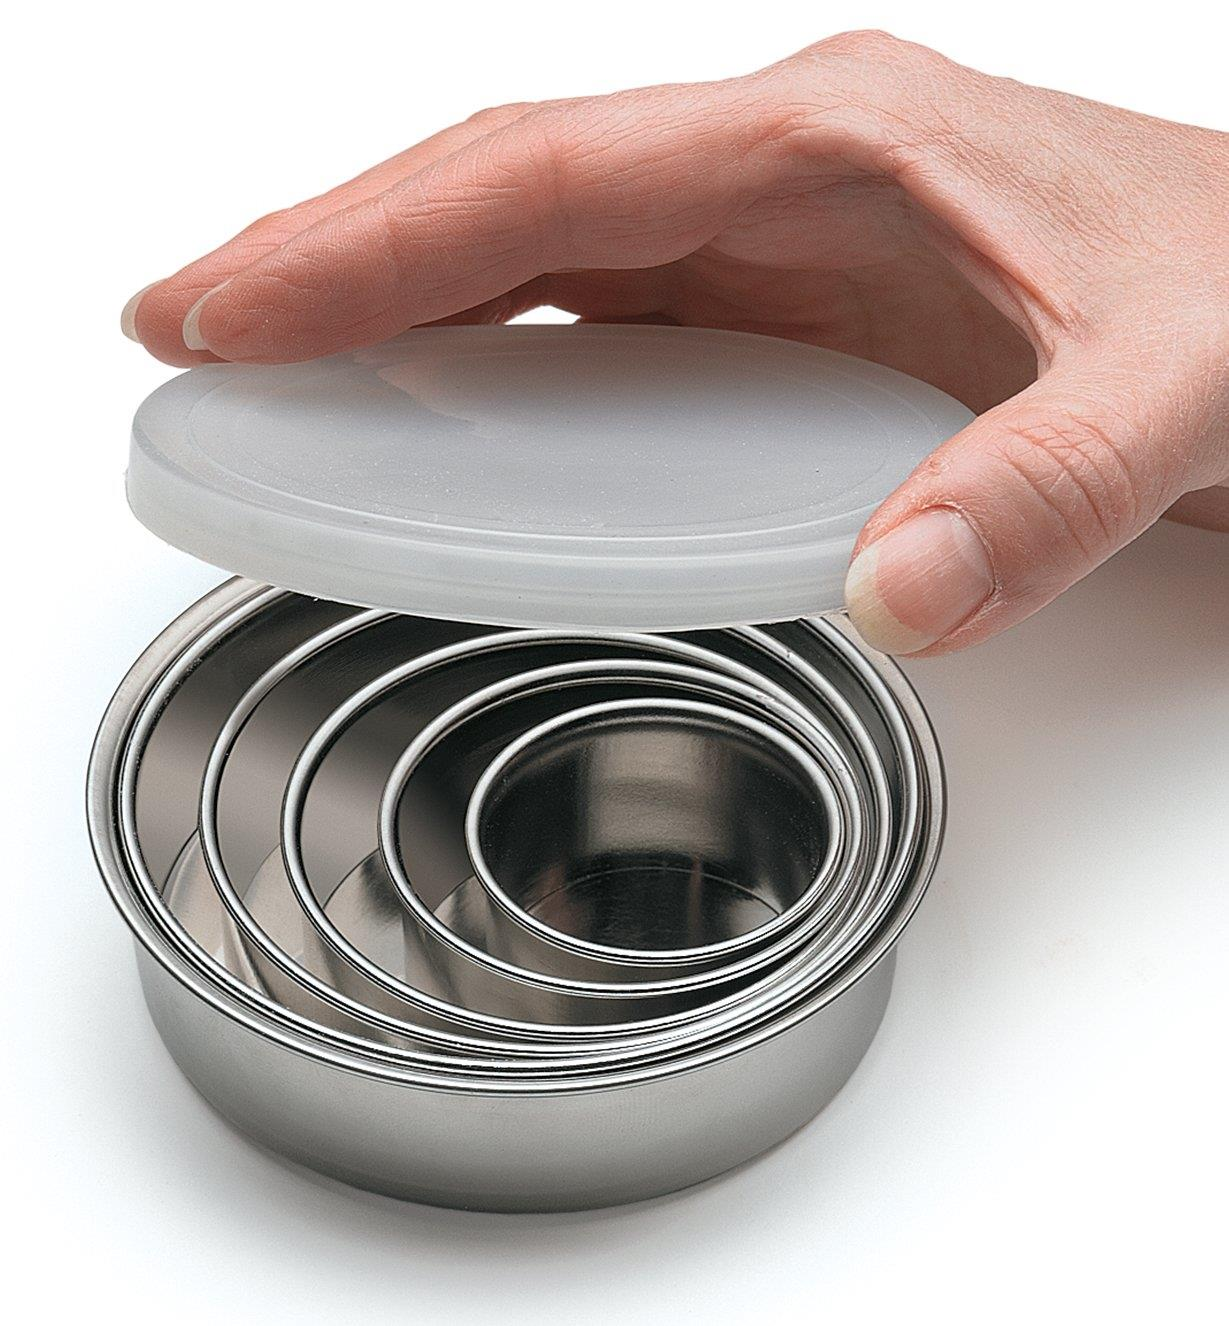 Stainless Steel Pastry Cutters nested in the included lidded bowl